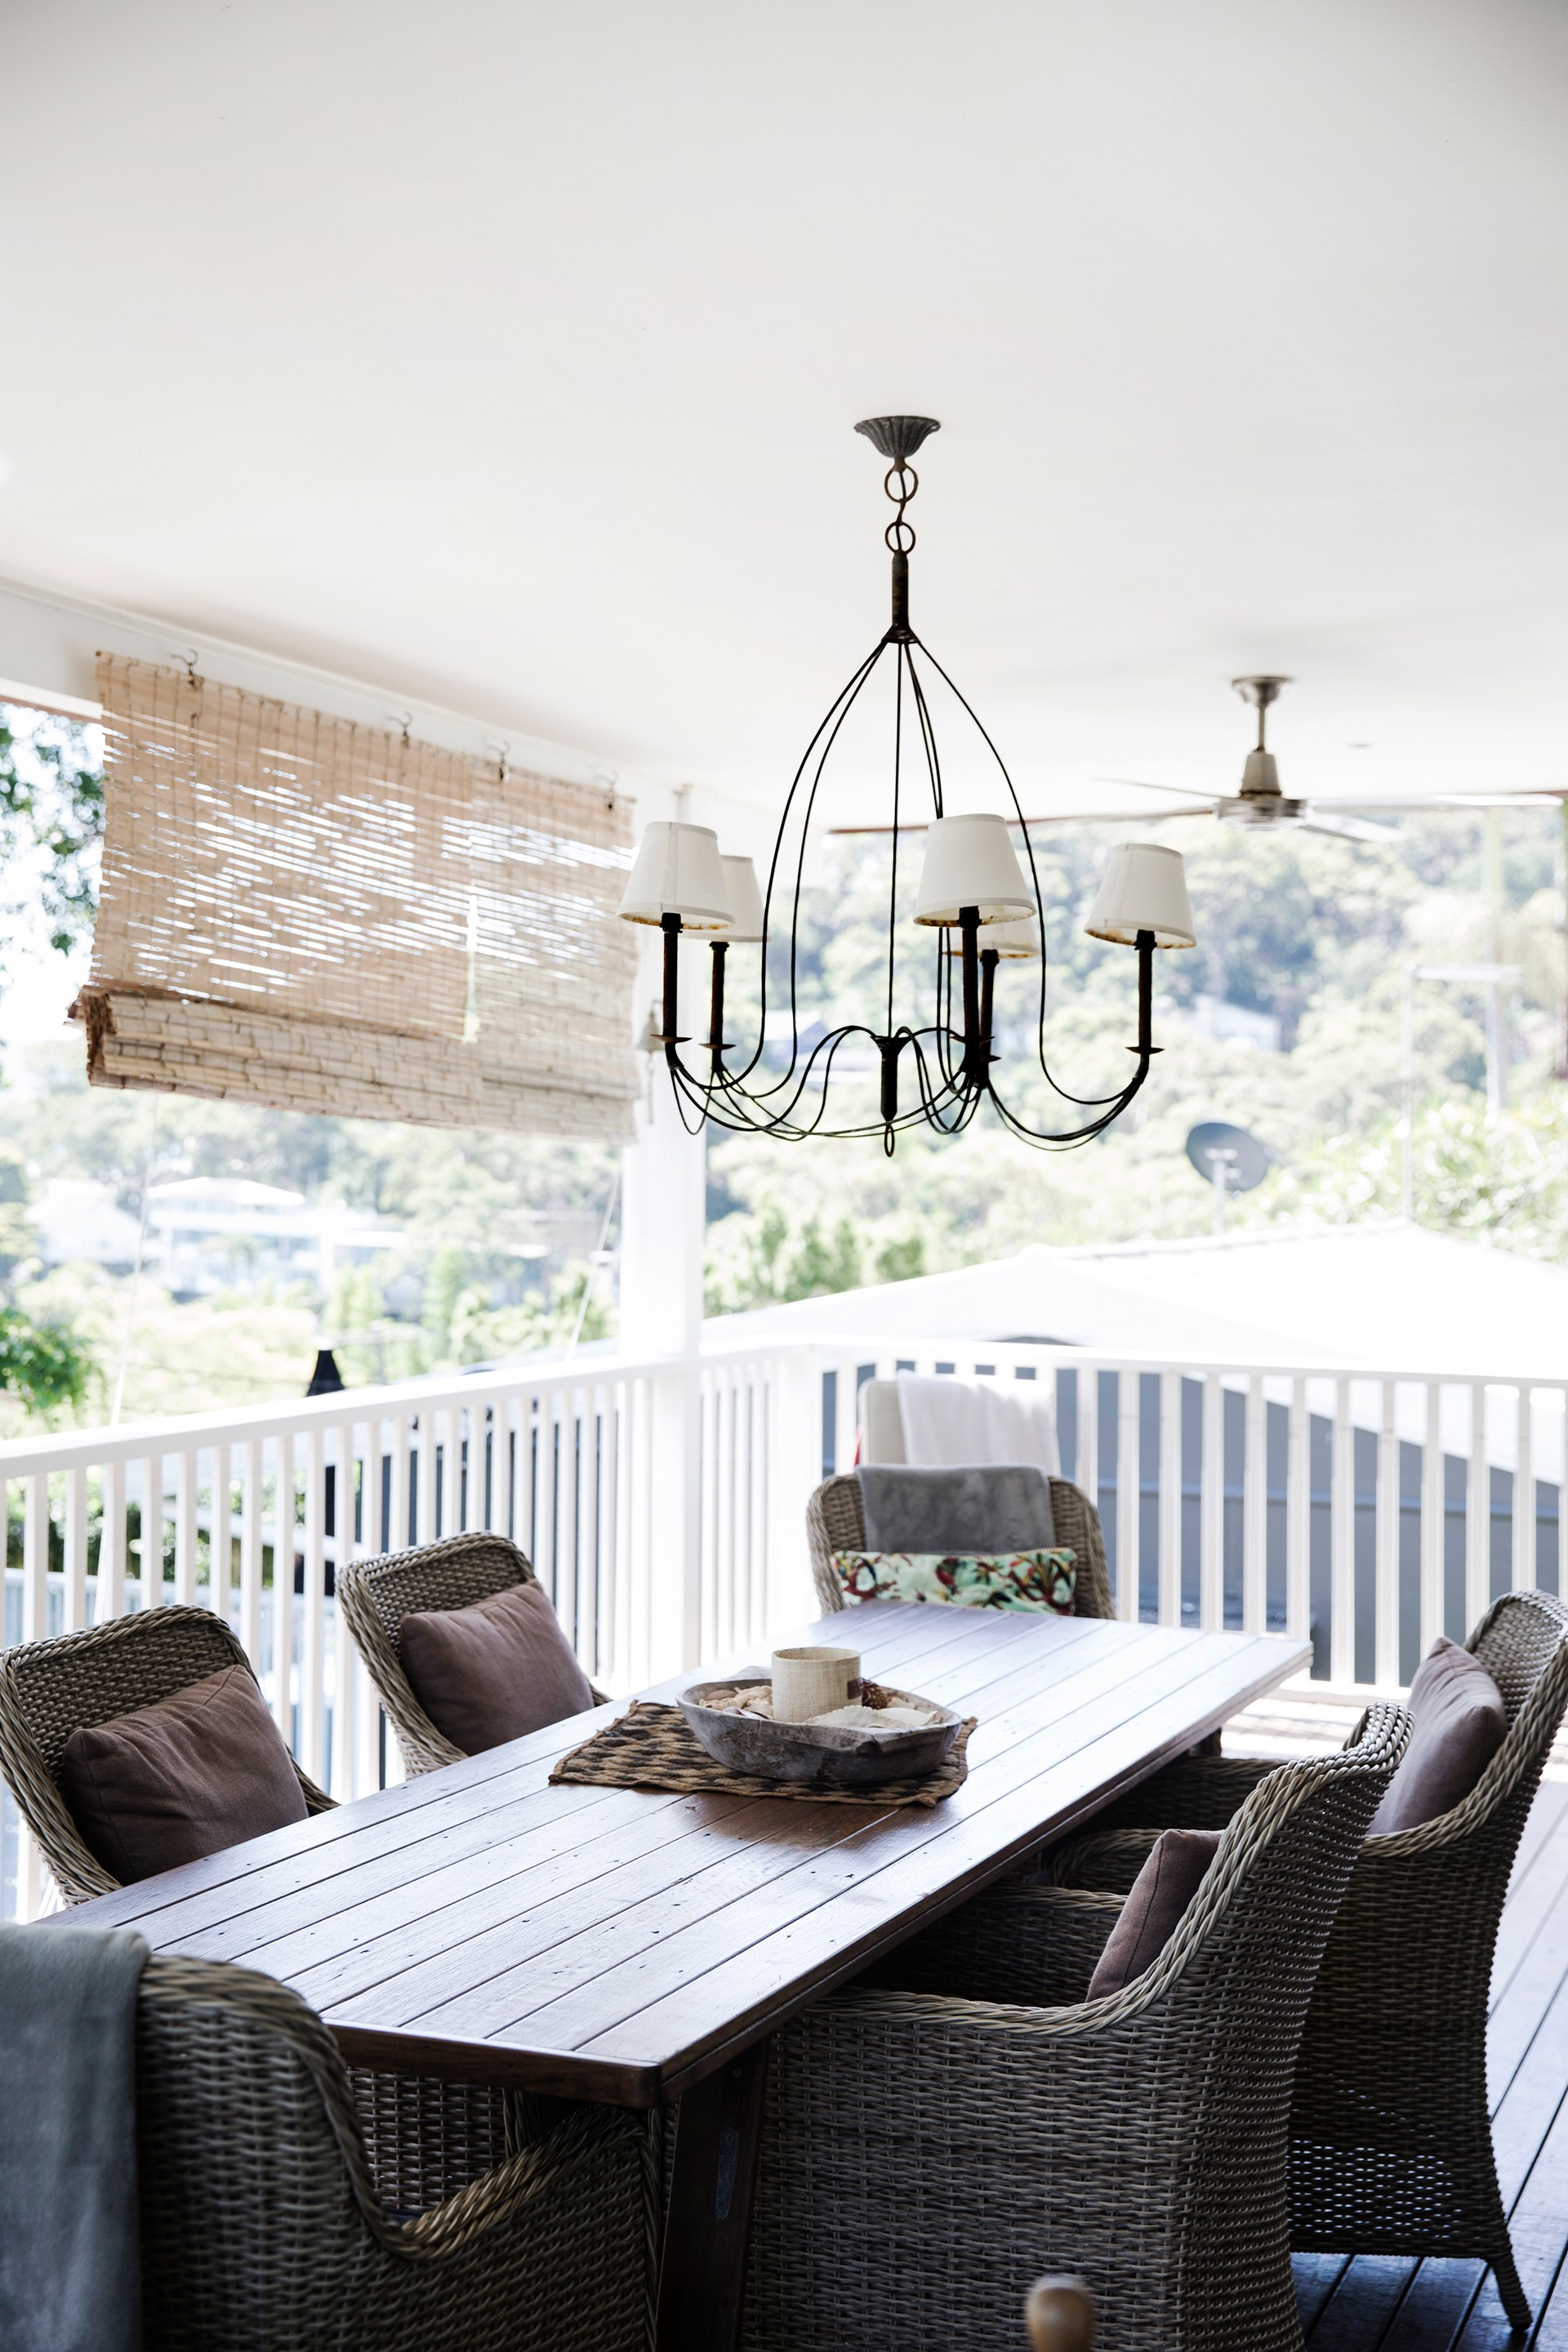 **Katy Young** The owners of this charming seaside cottage on Sydney's northern beaches, take their decorating cues from their natural surroundings. [See the full home here](http://www.homestolove.com.au/eclectic-home-by-the-beach-3671) or [vote for this home](http://www.homestolove.com.au/homes-reader-home-of-the-year-4499).